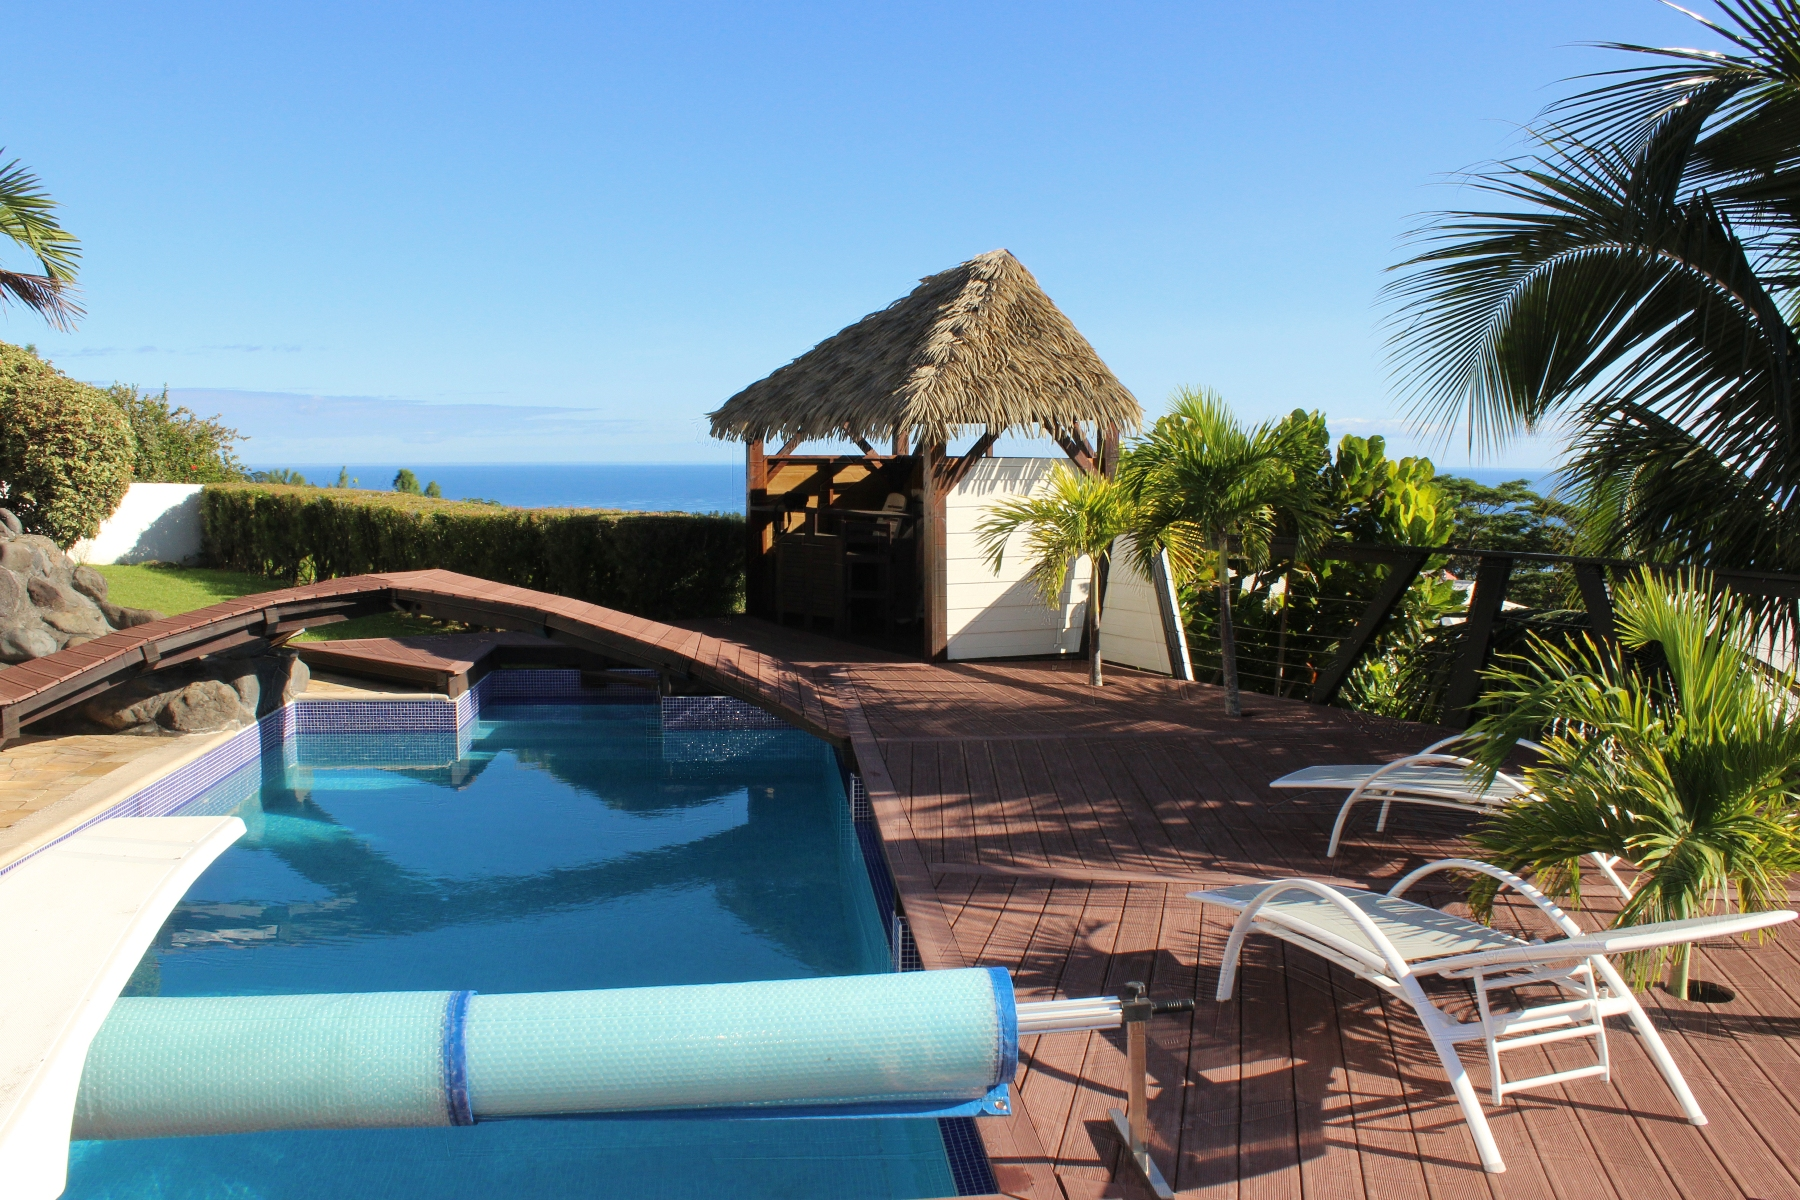 Multi-Family Home for Sale at Ocean view property Mahina, Tahiti French Polynesia